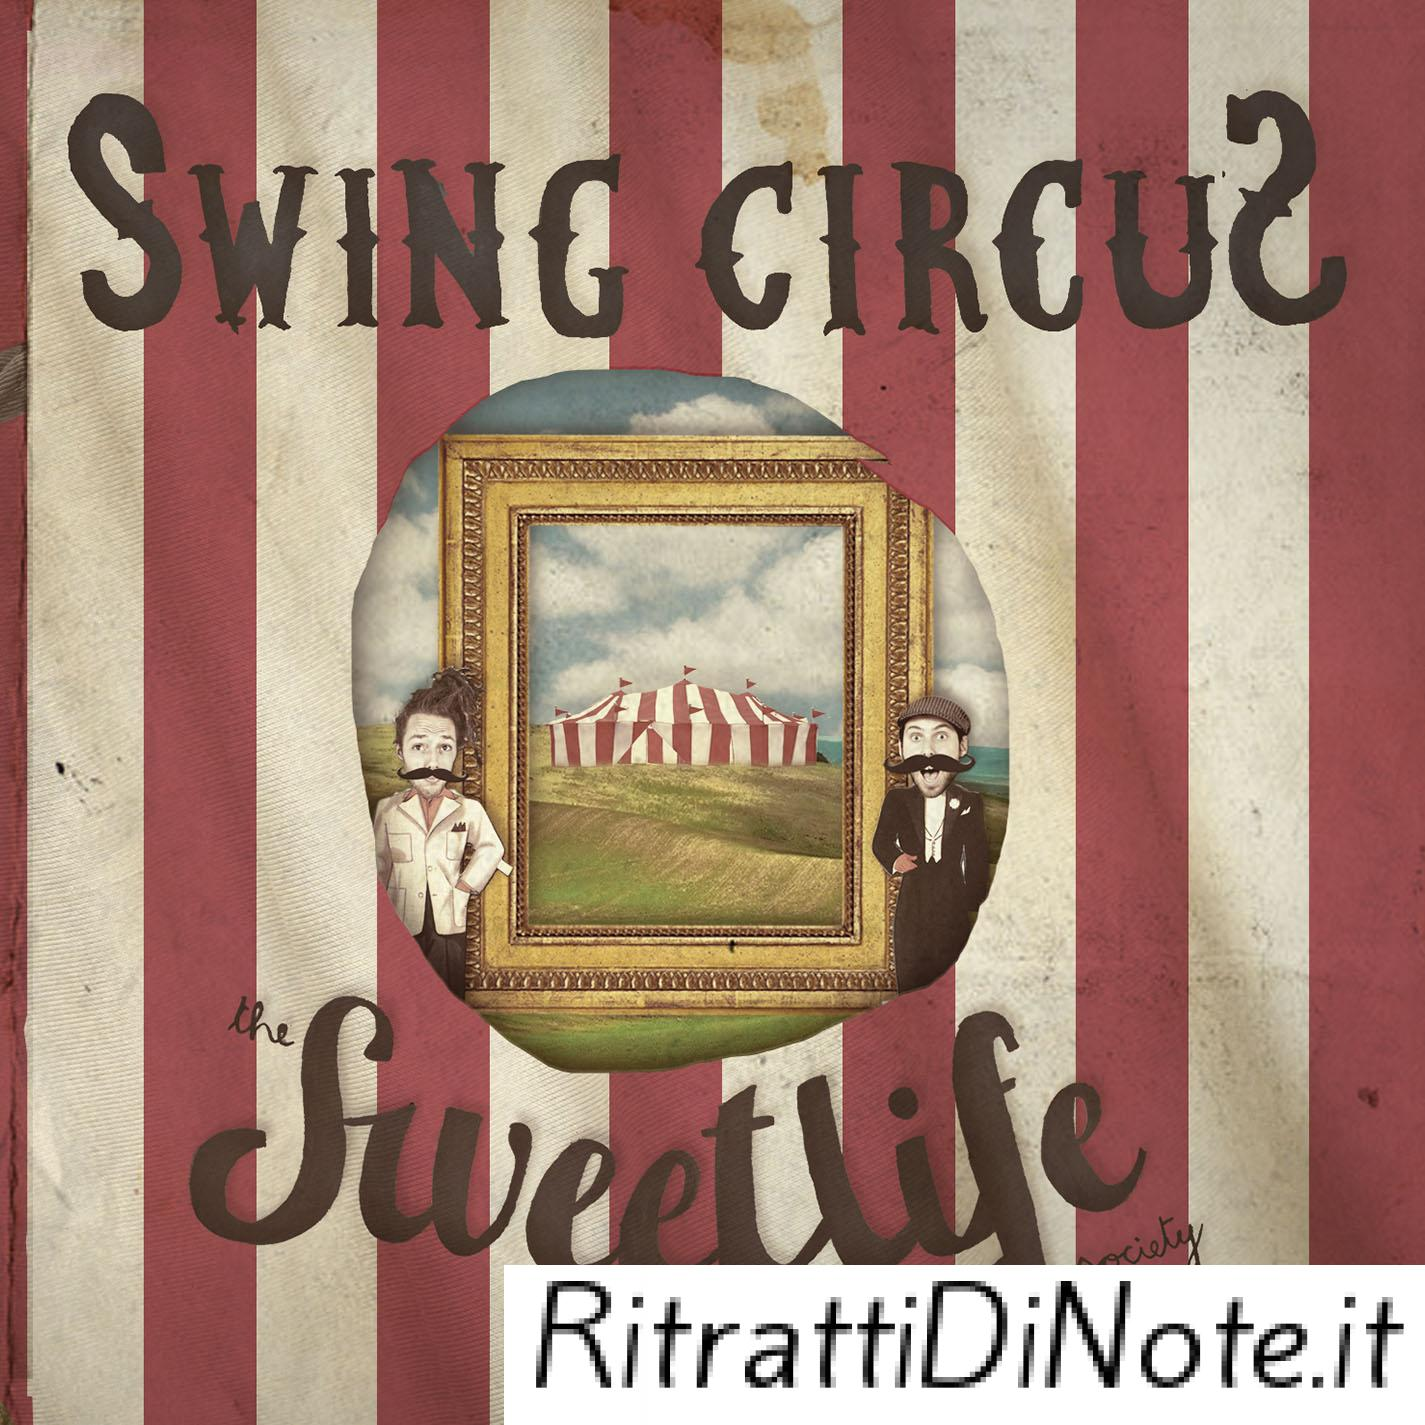 Cover album Swing Circus